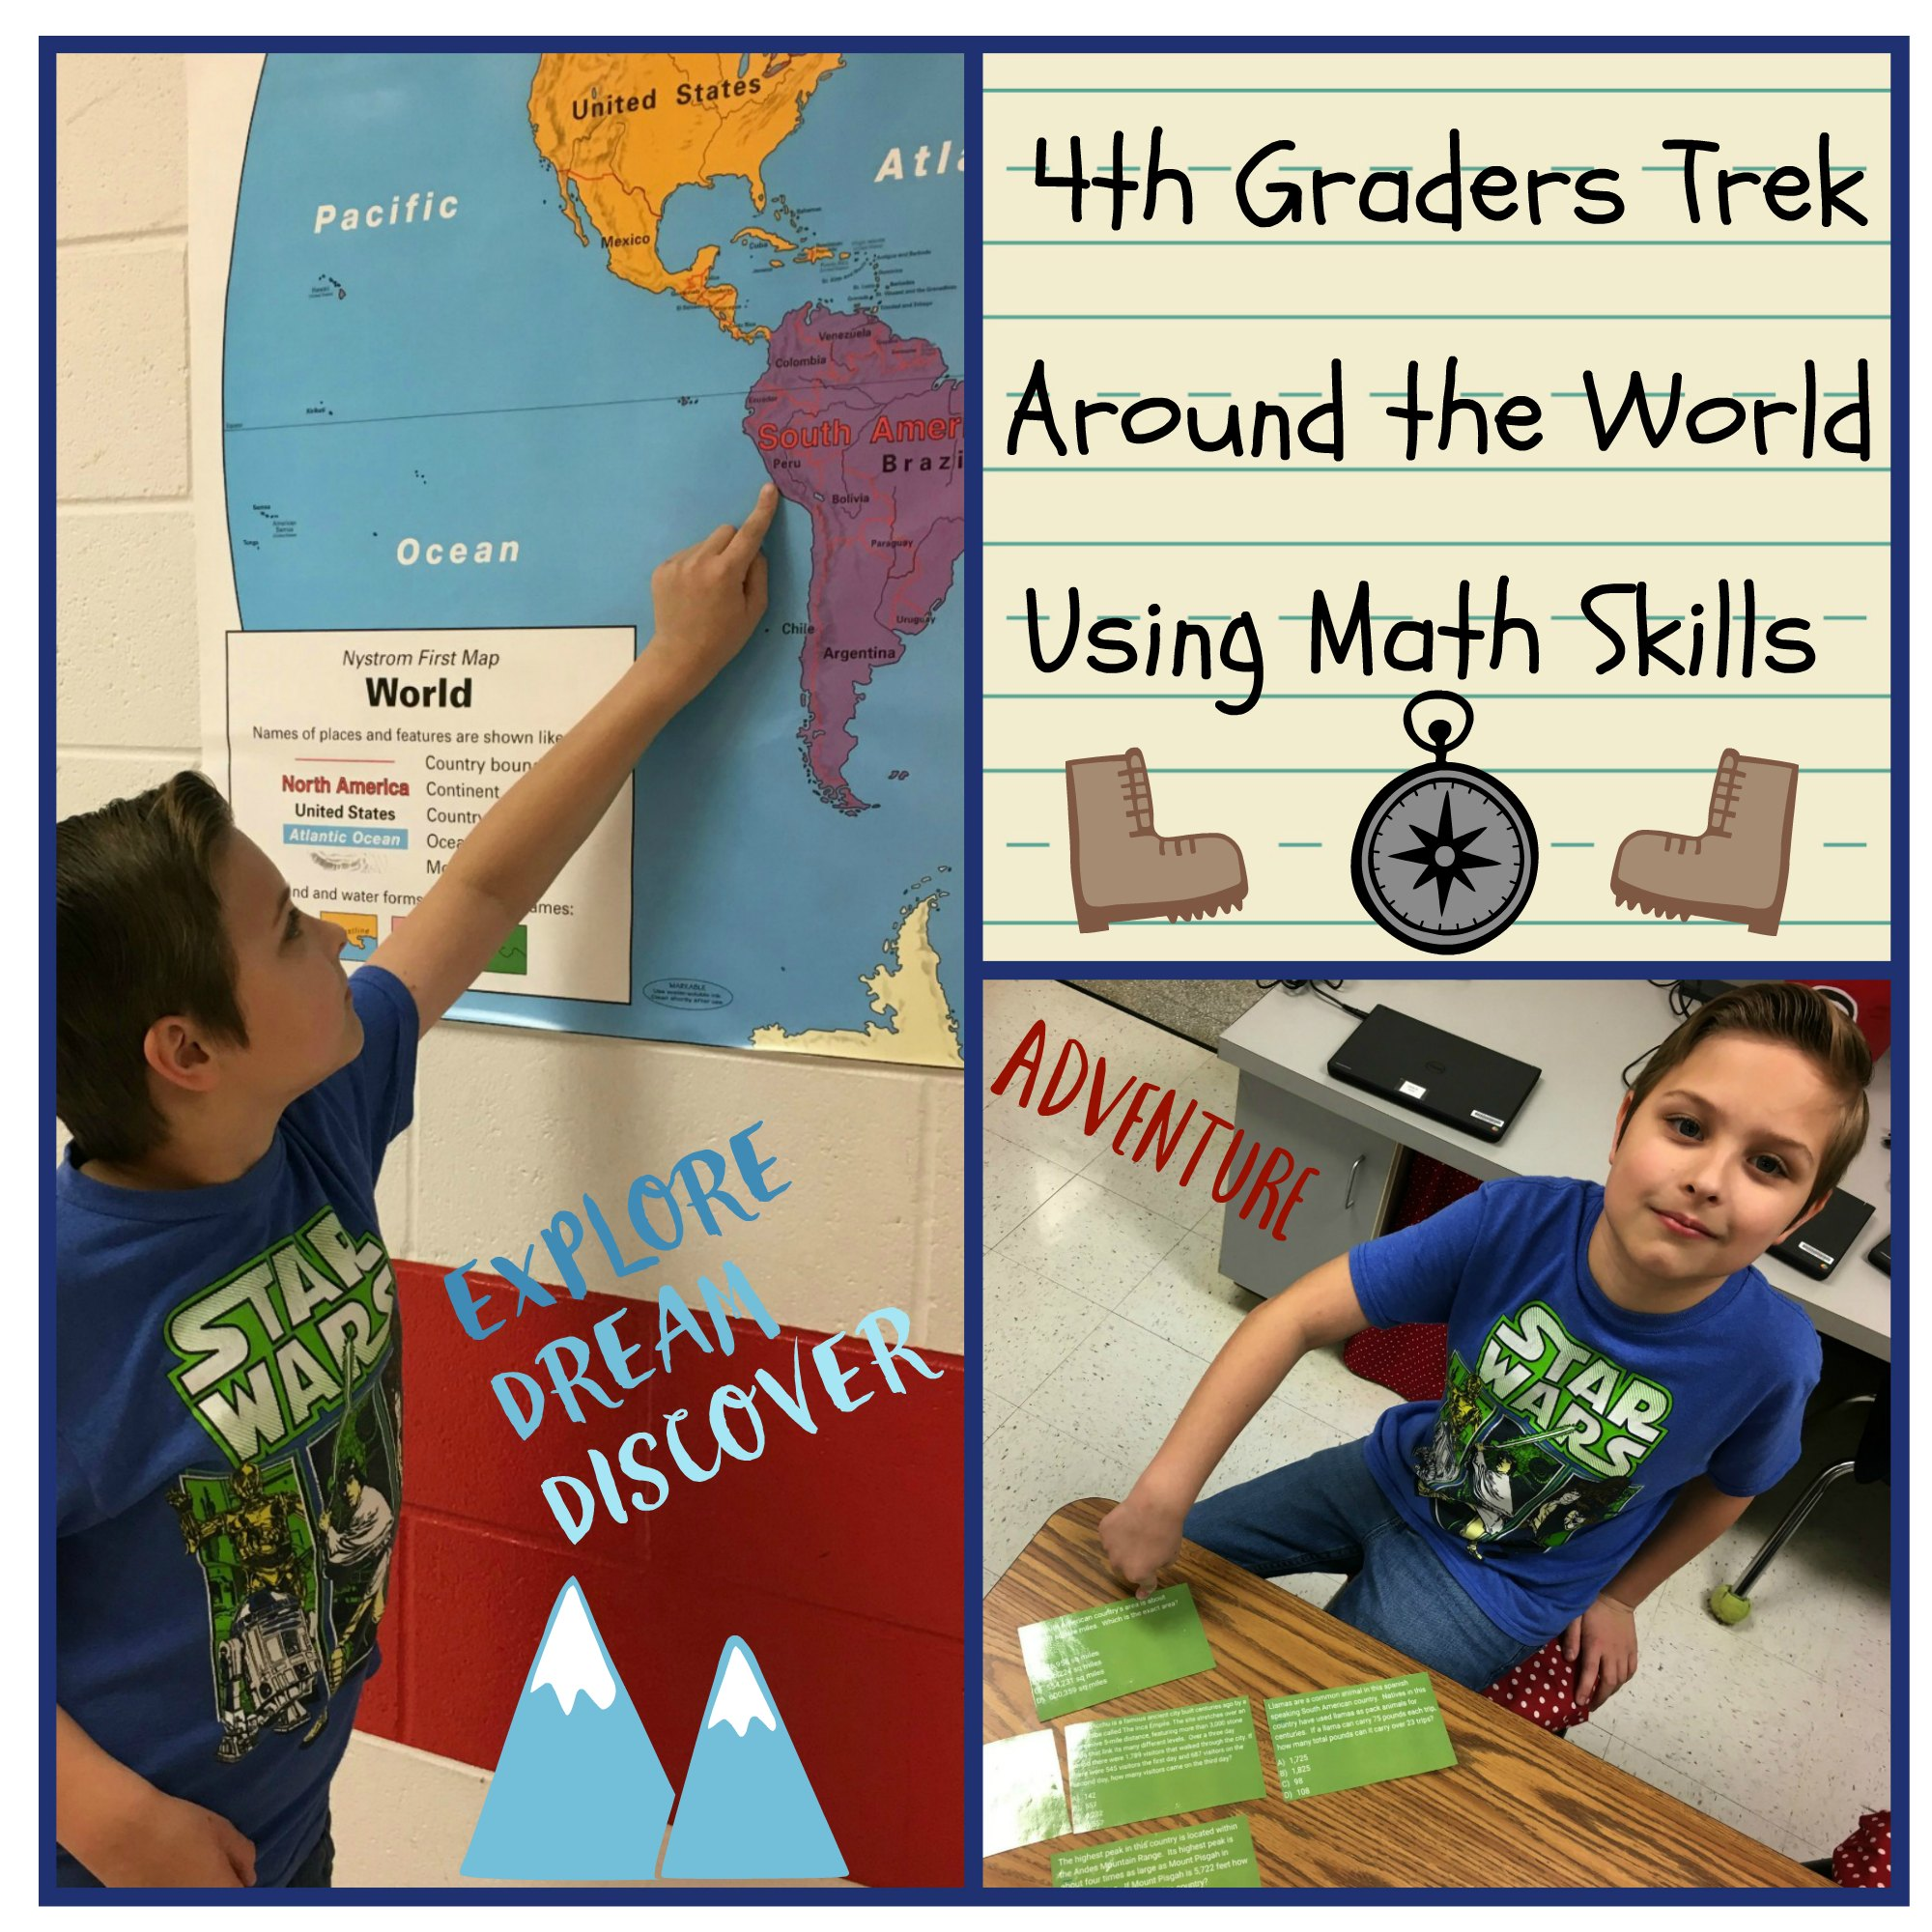 collage pictures of 4th grade's trek across the world